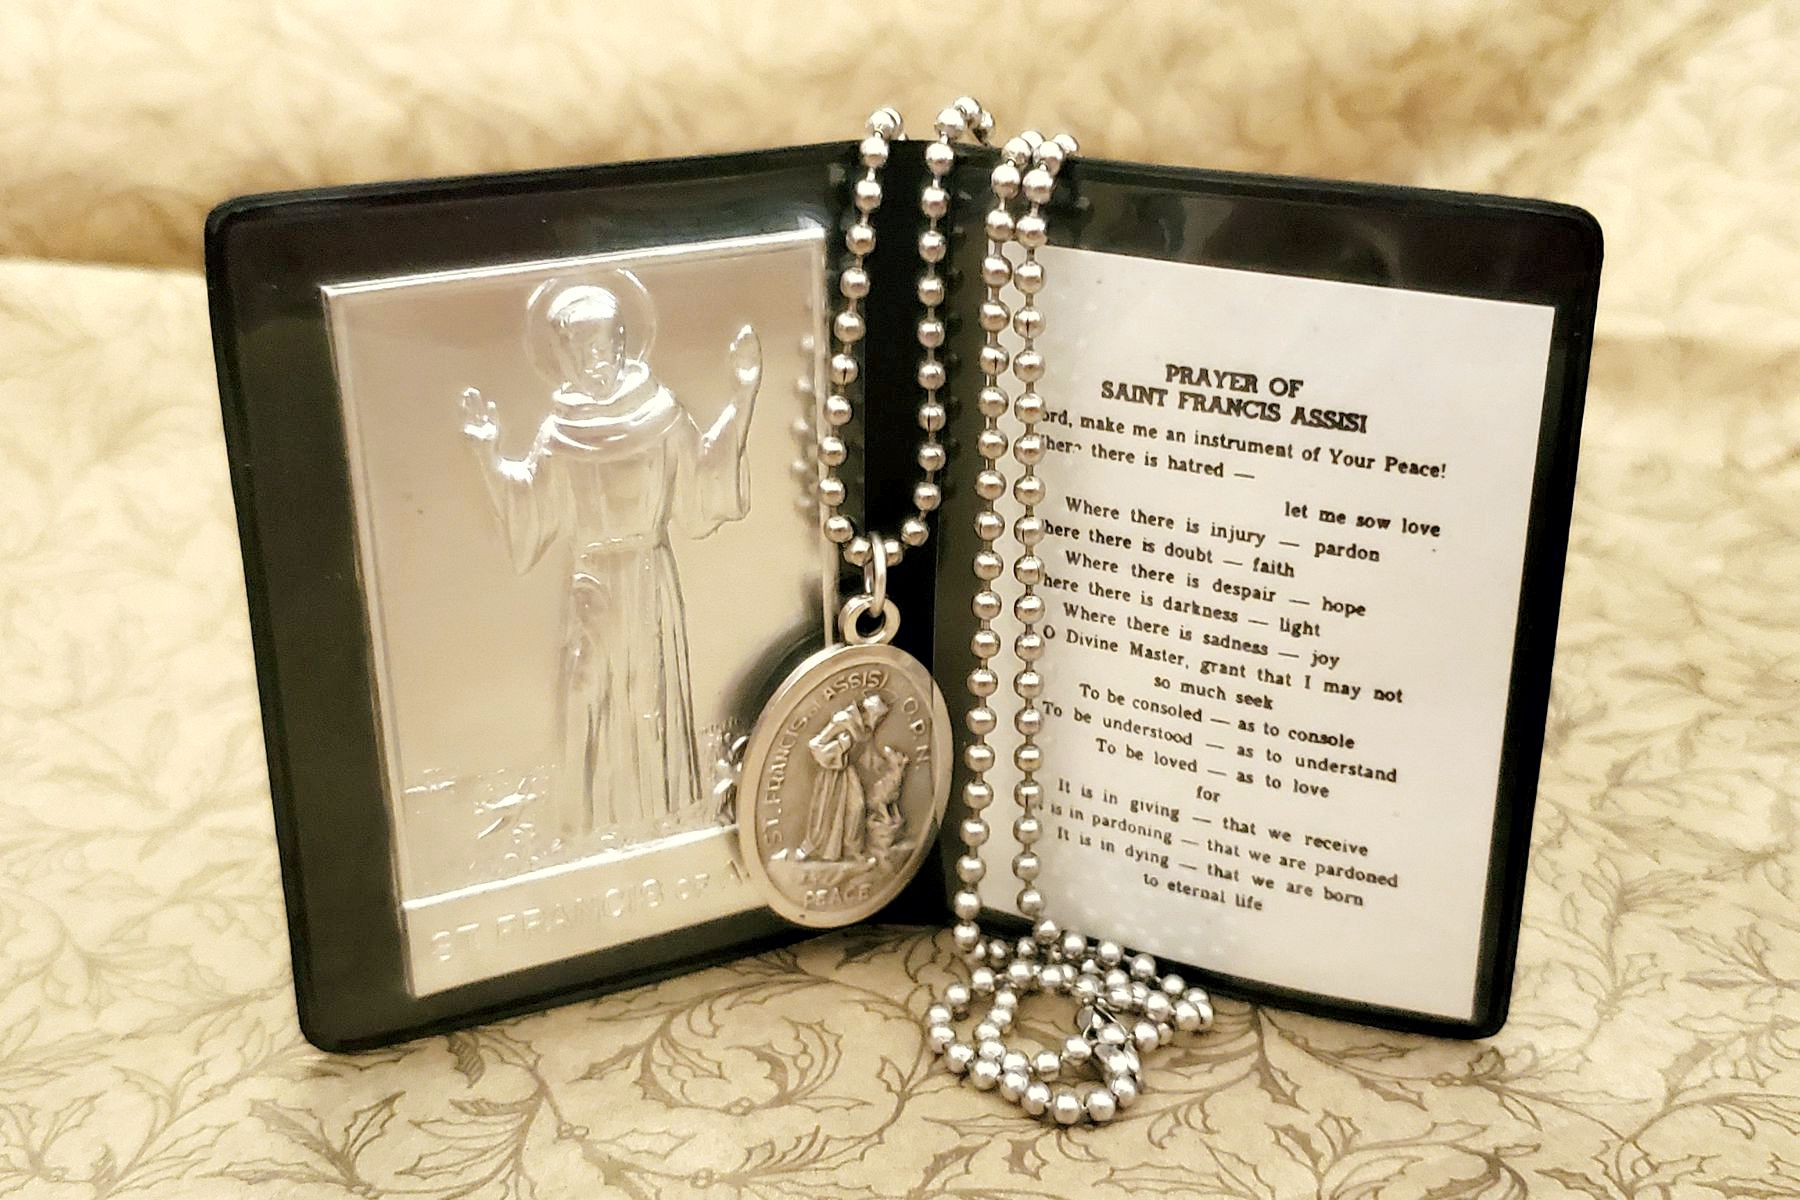 Saint Francis of Assisi Aluminum Ex Voto Wallet with Prayer & Medal - Add a Necklace, Too!